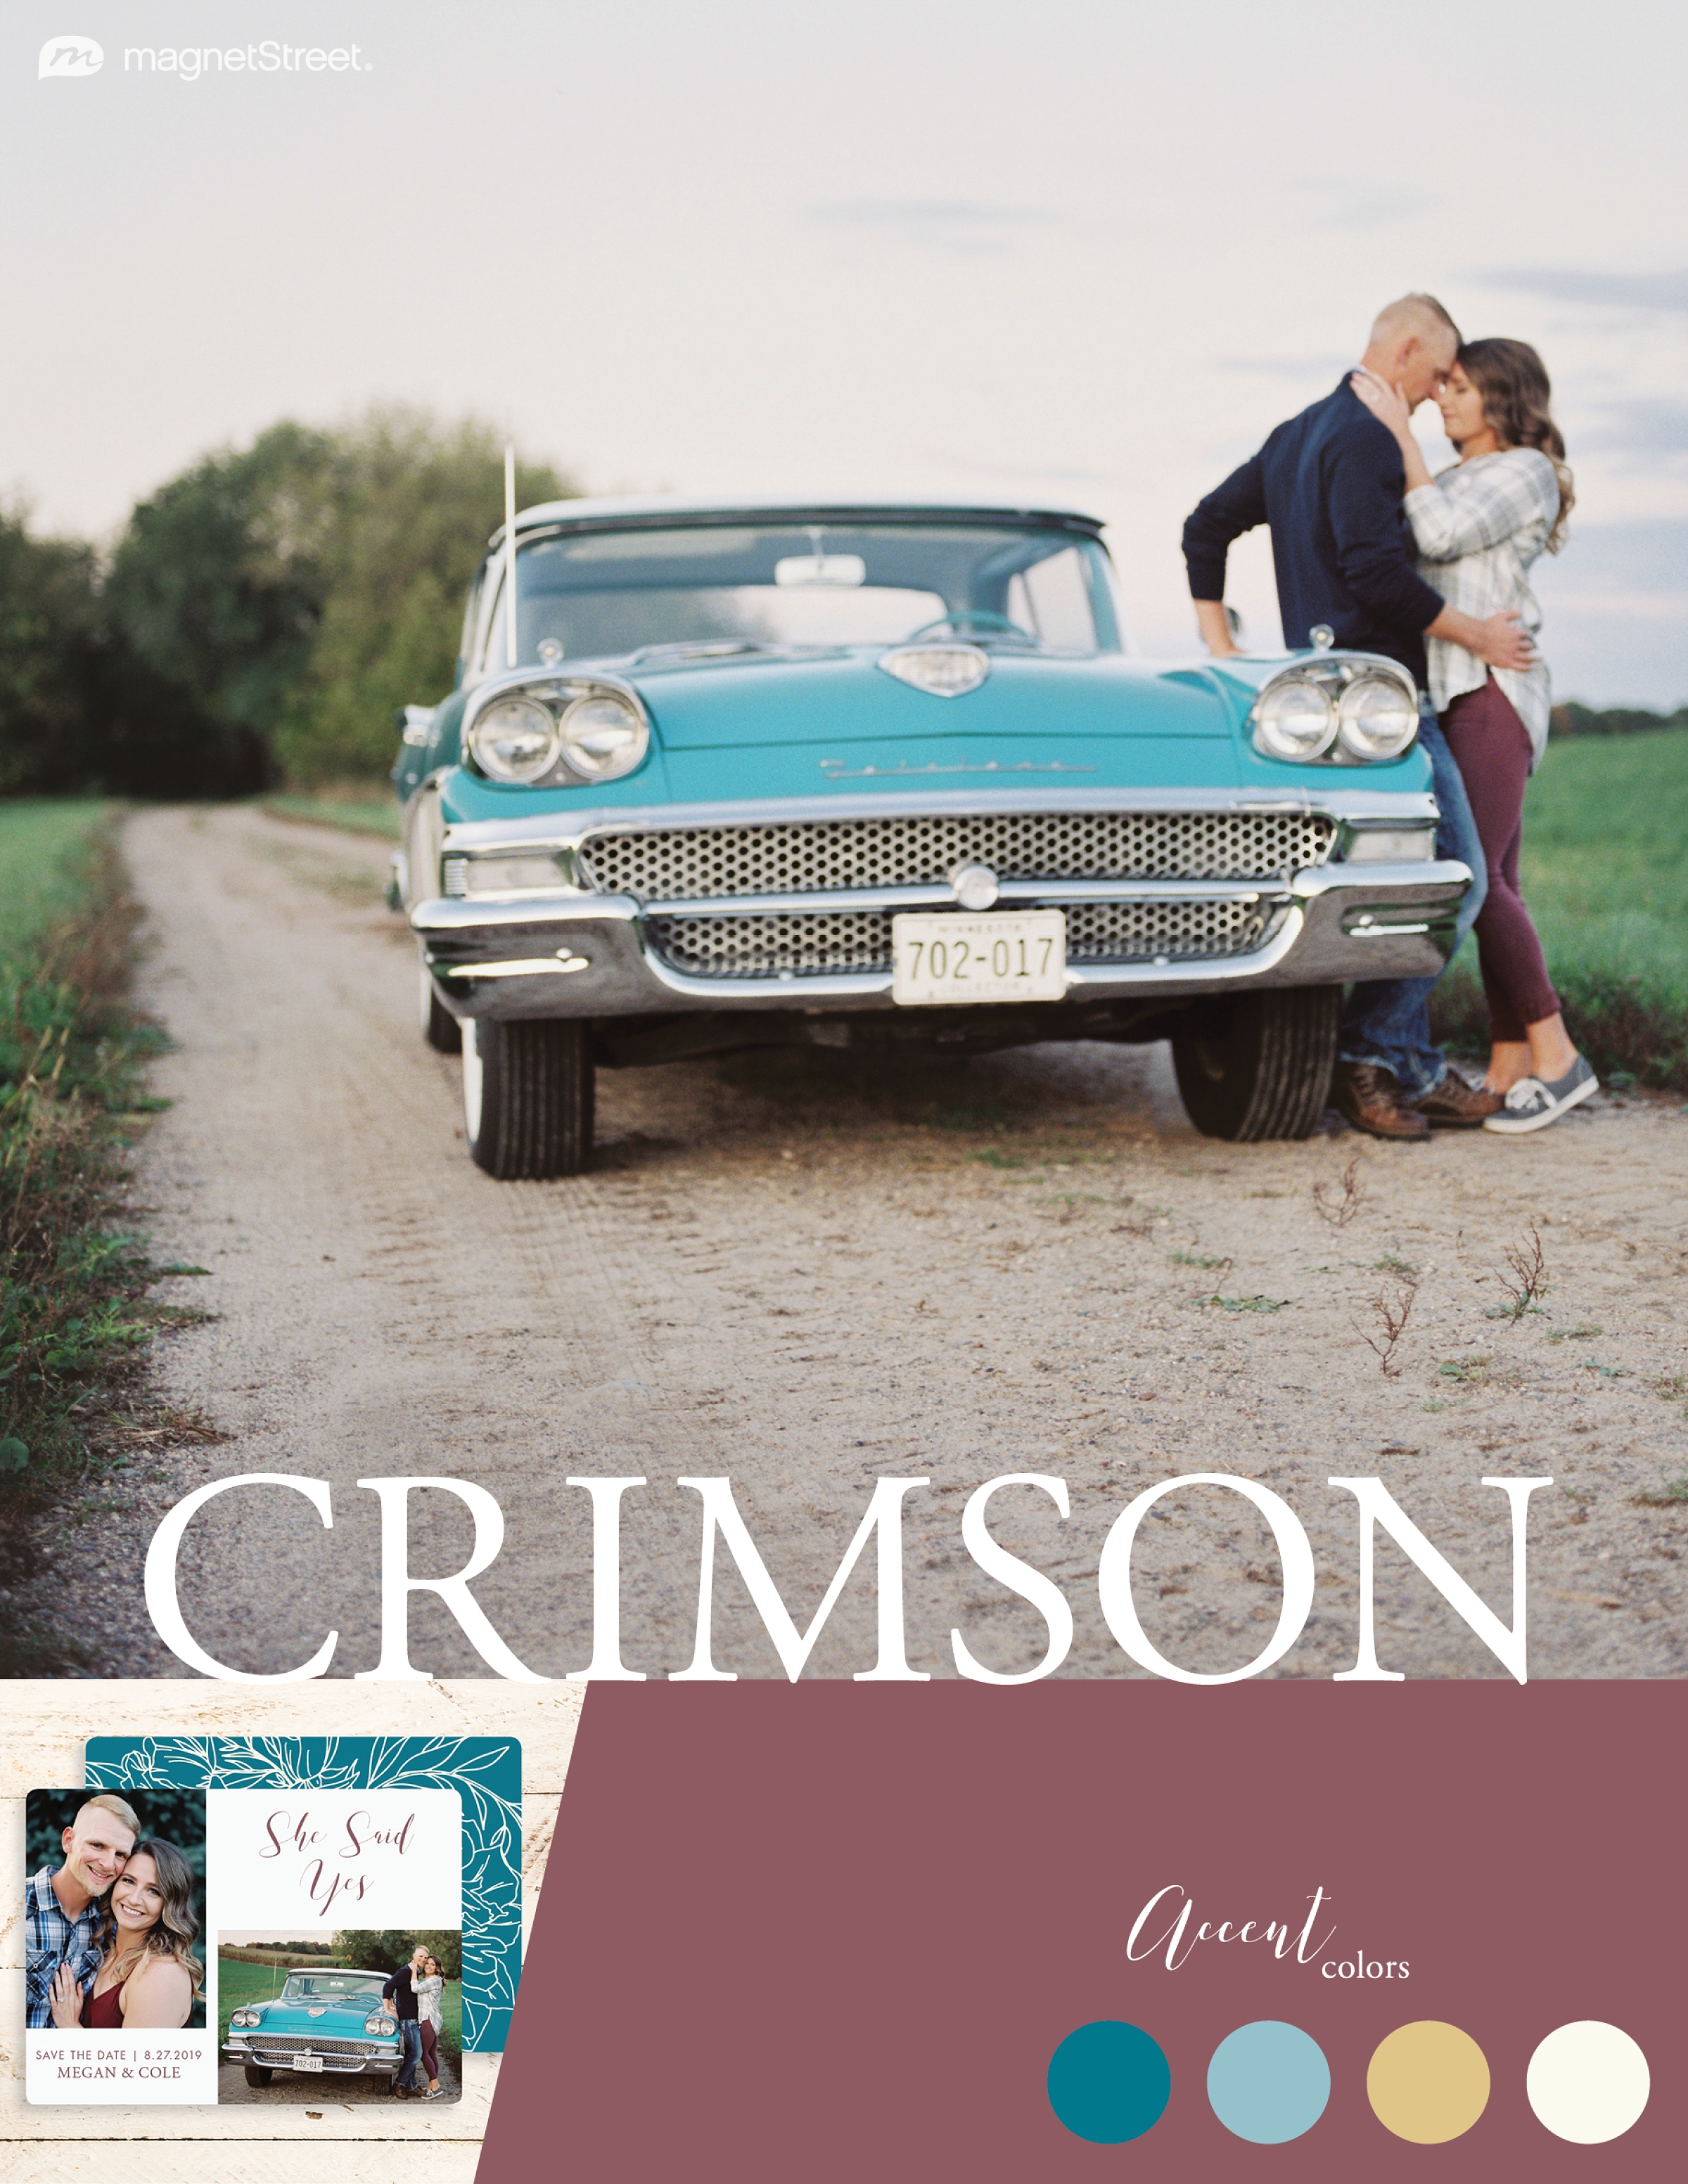 Romantic Vintage Car Engagement Session At Sunset